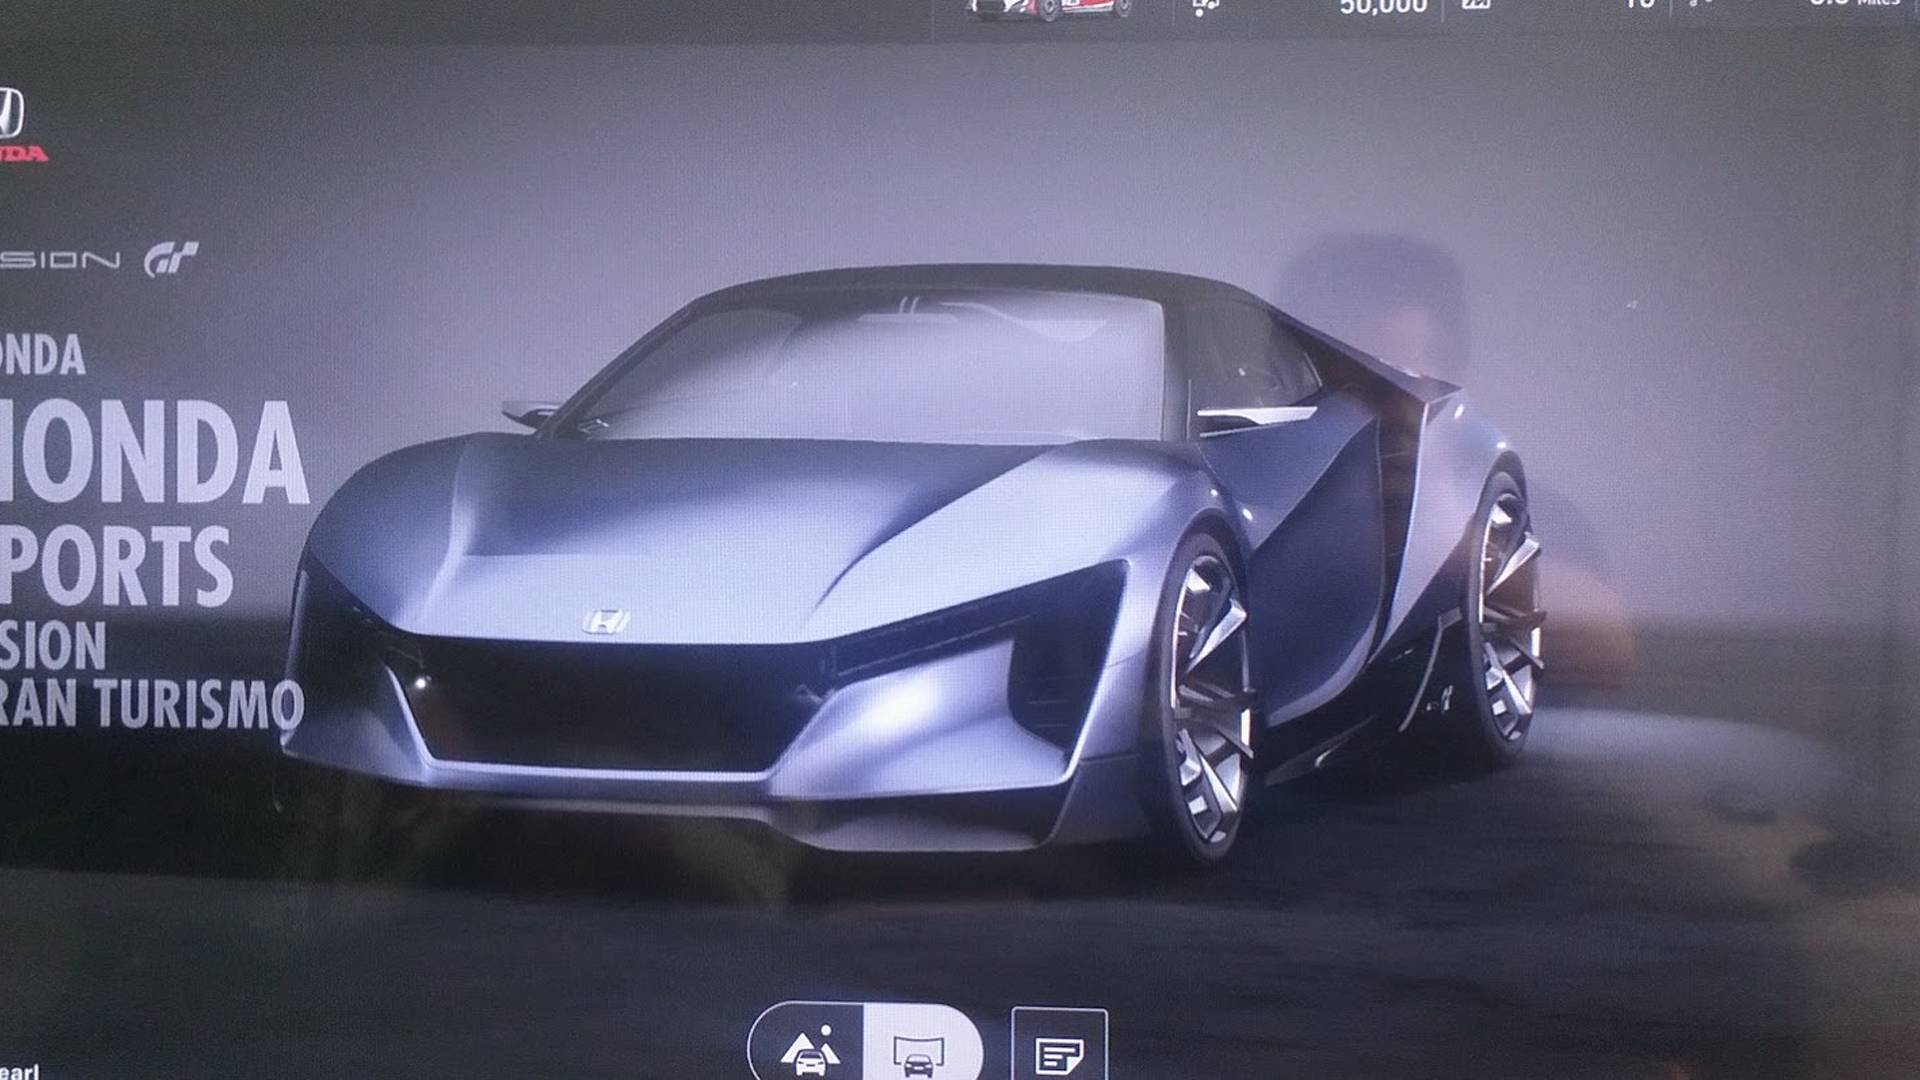 Hondas Baby NSX Is Actually The Sports Gran Turismo Concept